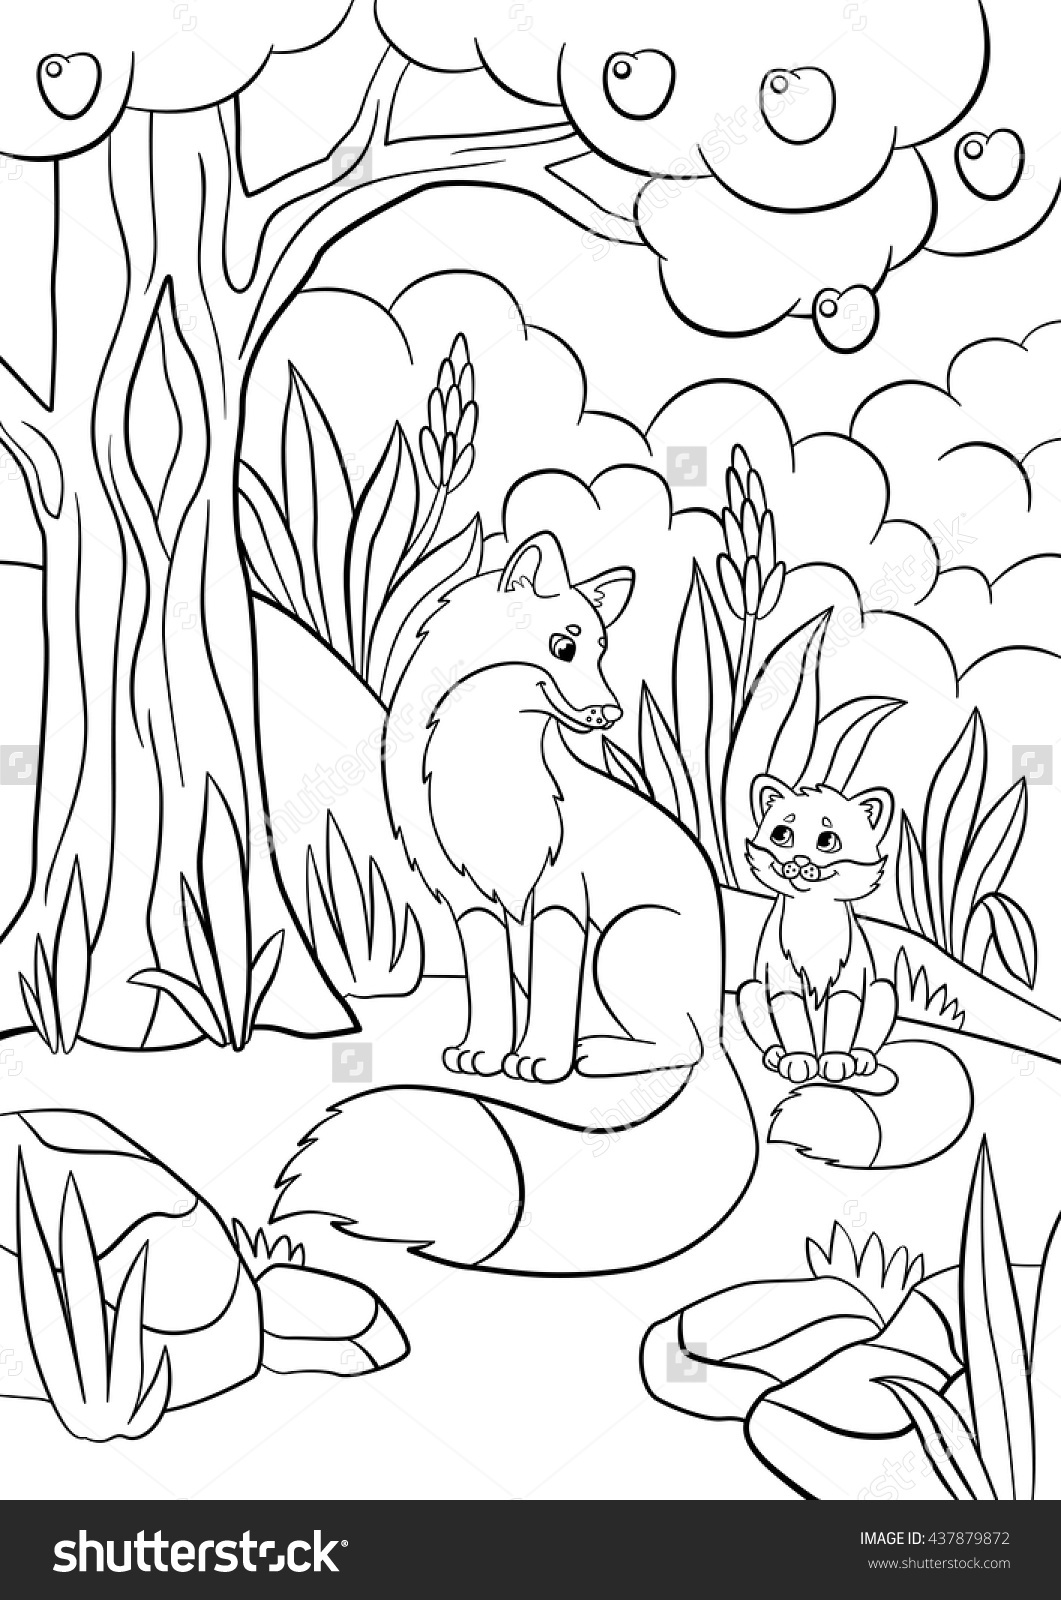 1061x1600 Stunning Design Baby Fox Coloring Pages Free Printable For Kids